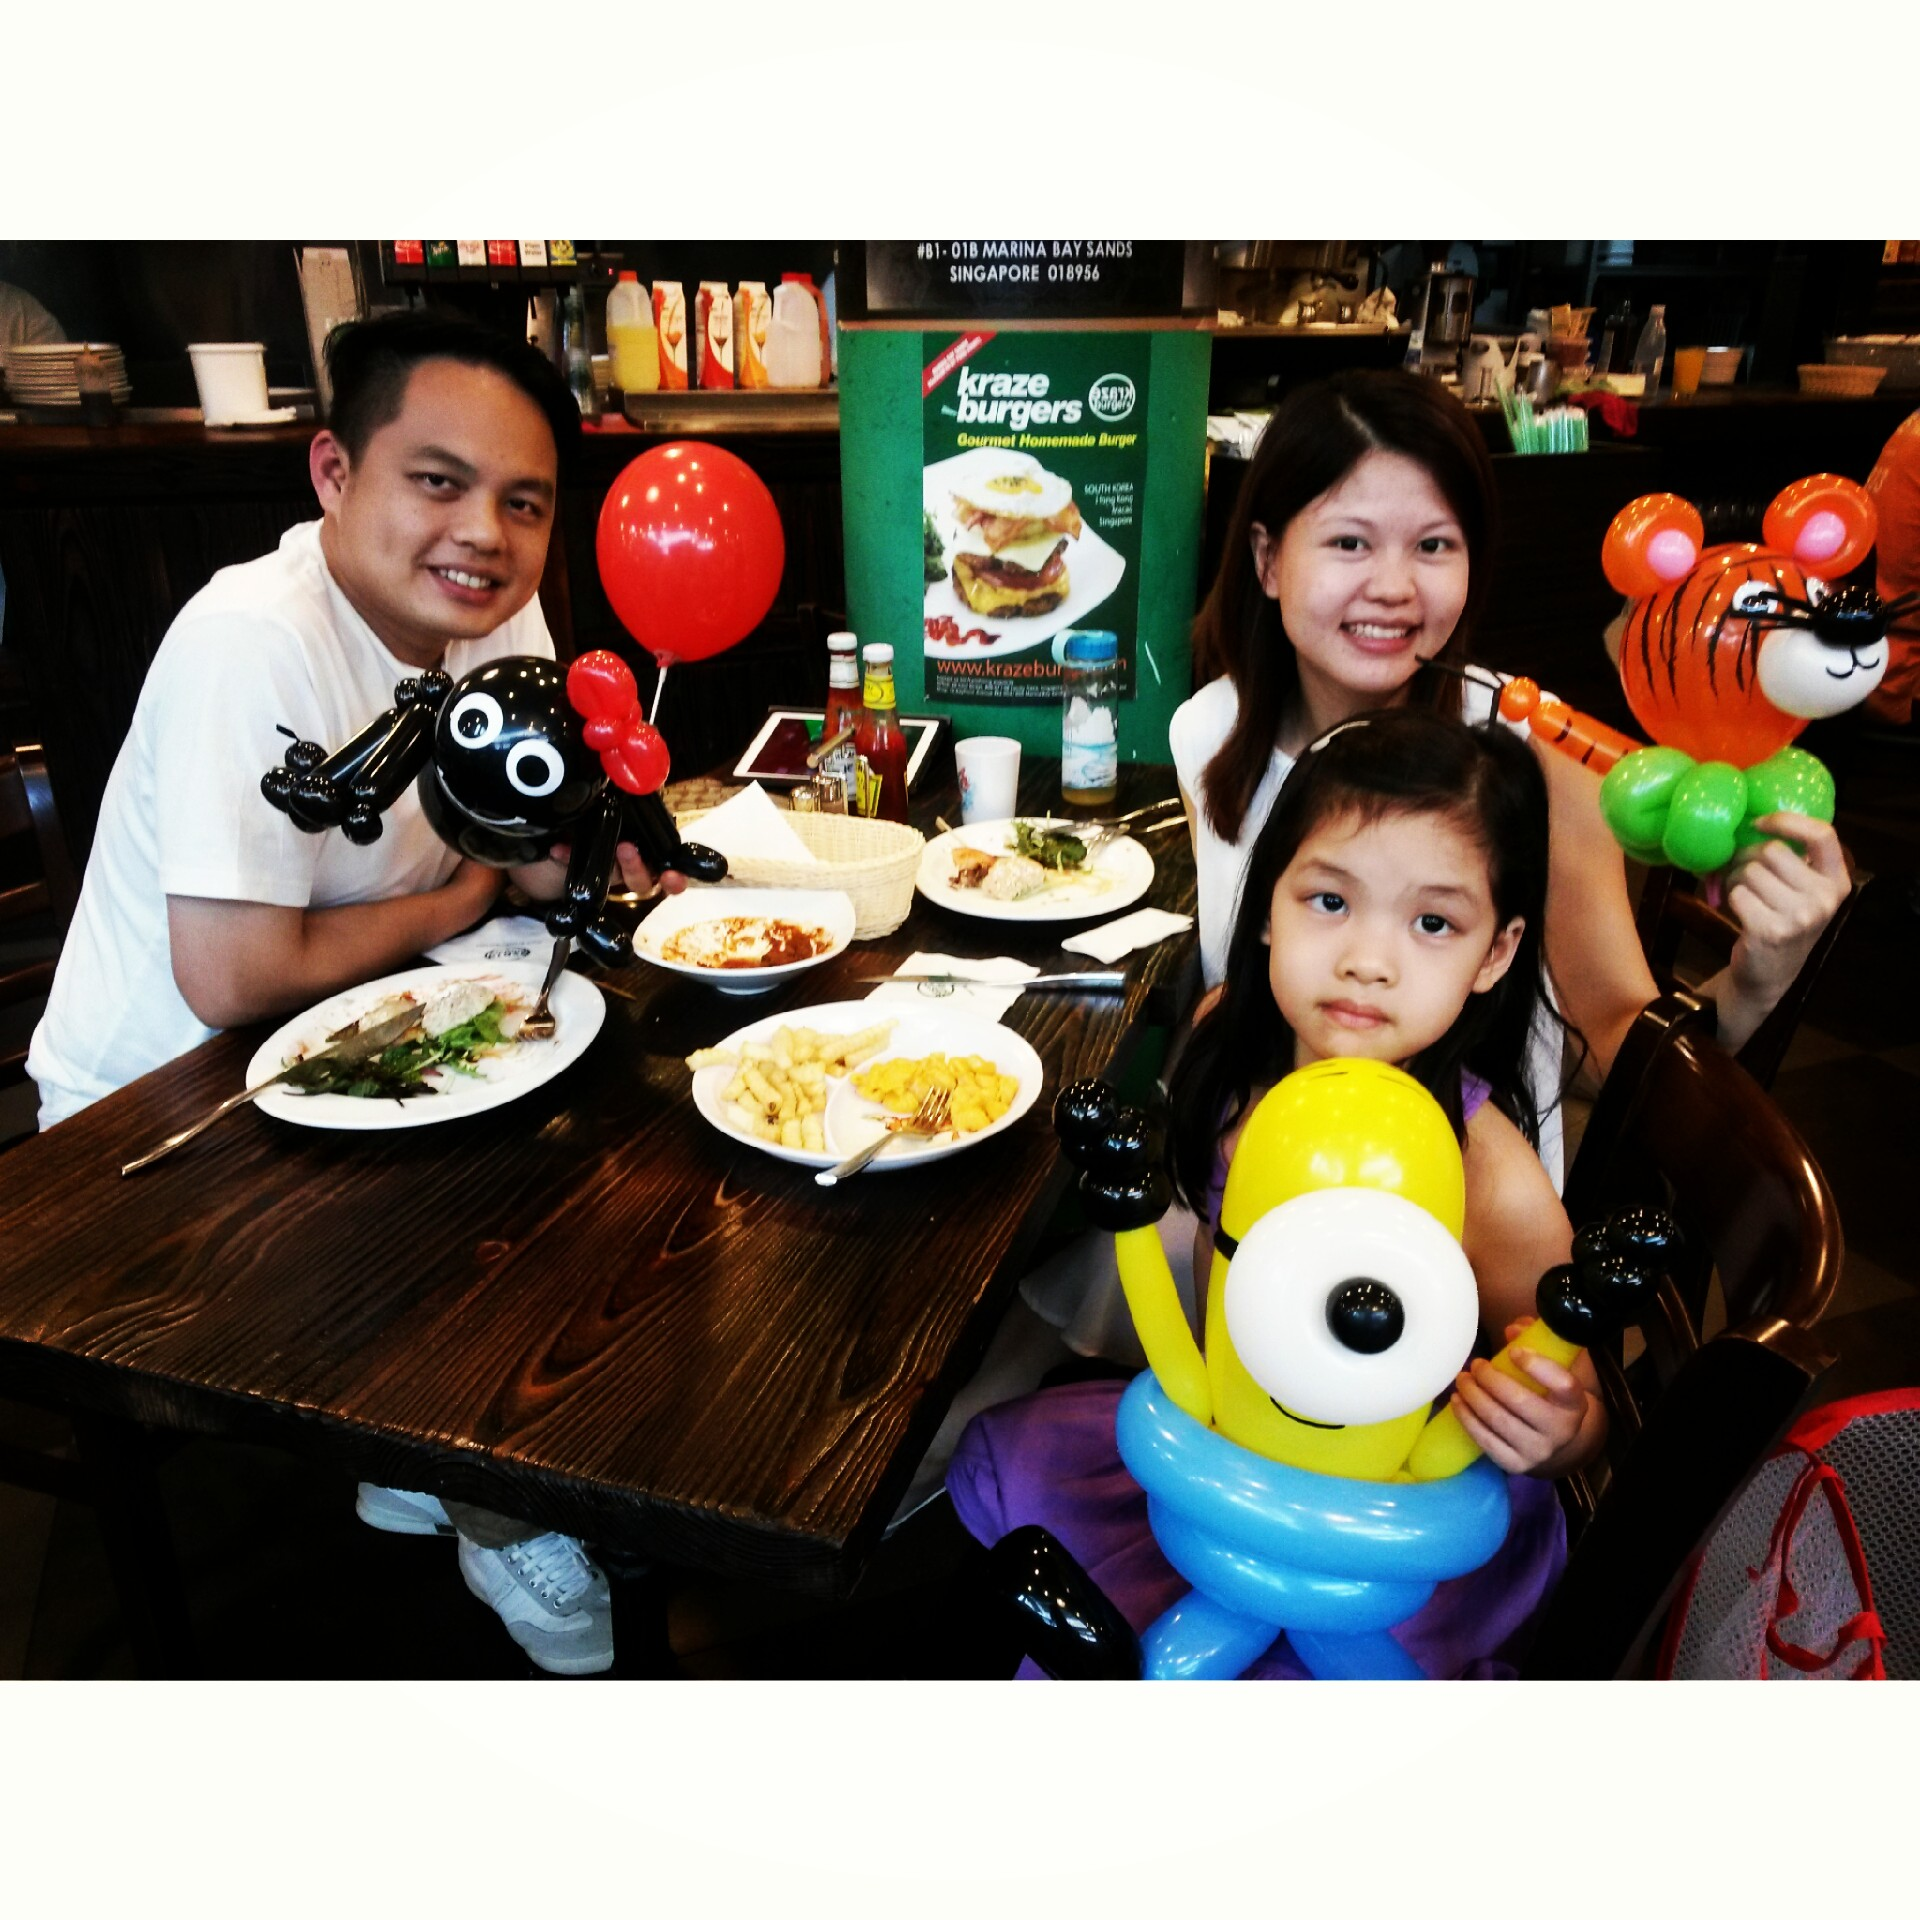 , Day 2 – Krazy Burgers Restaurant Balloon Sculpting, Singapore Balloon Decoration Services - Balloon Workshop and Balloon Sculpting